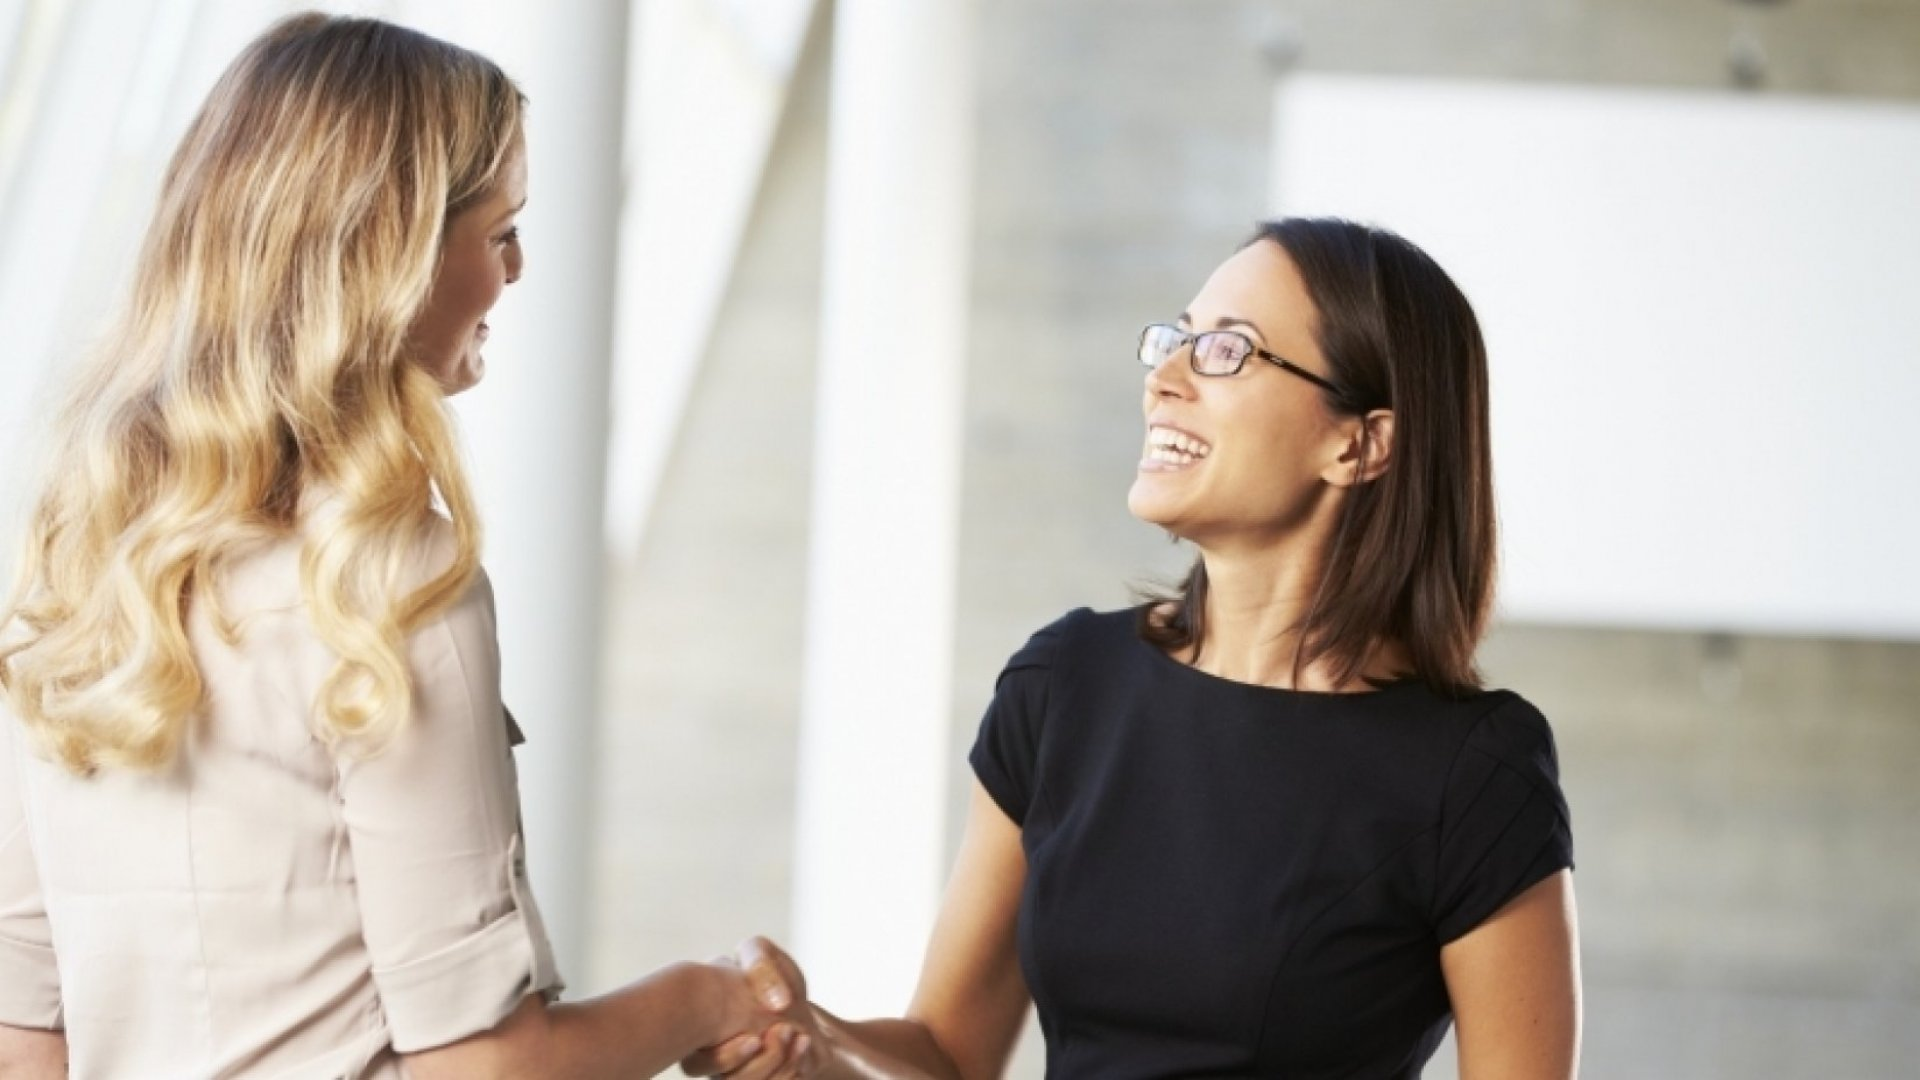 6 Unconventional Ways to Make a Lasting First Impression